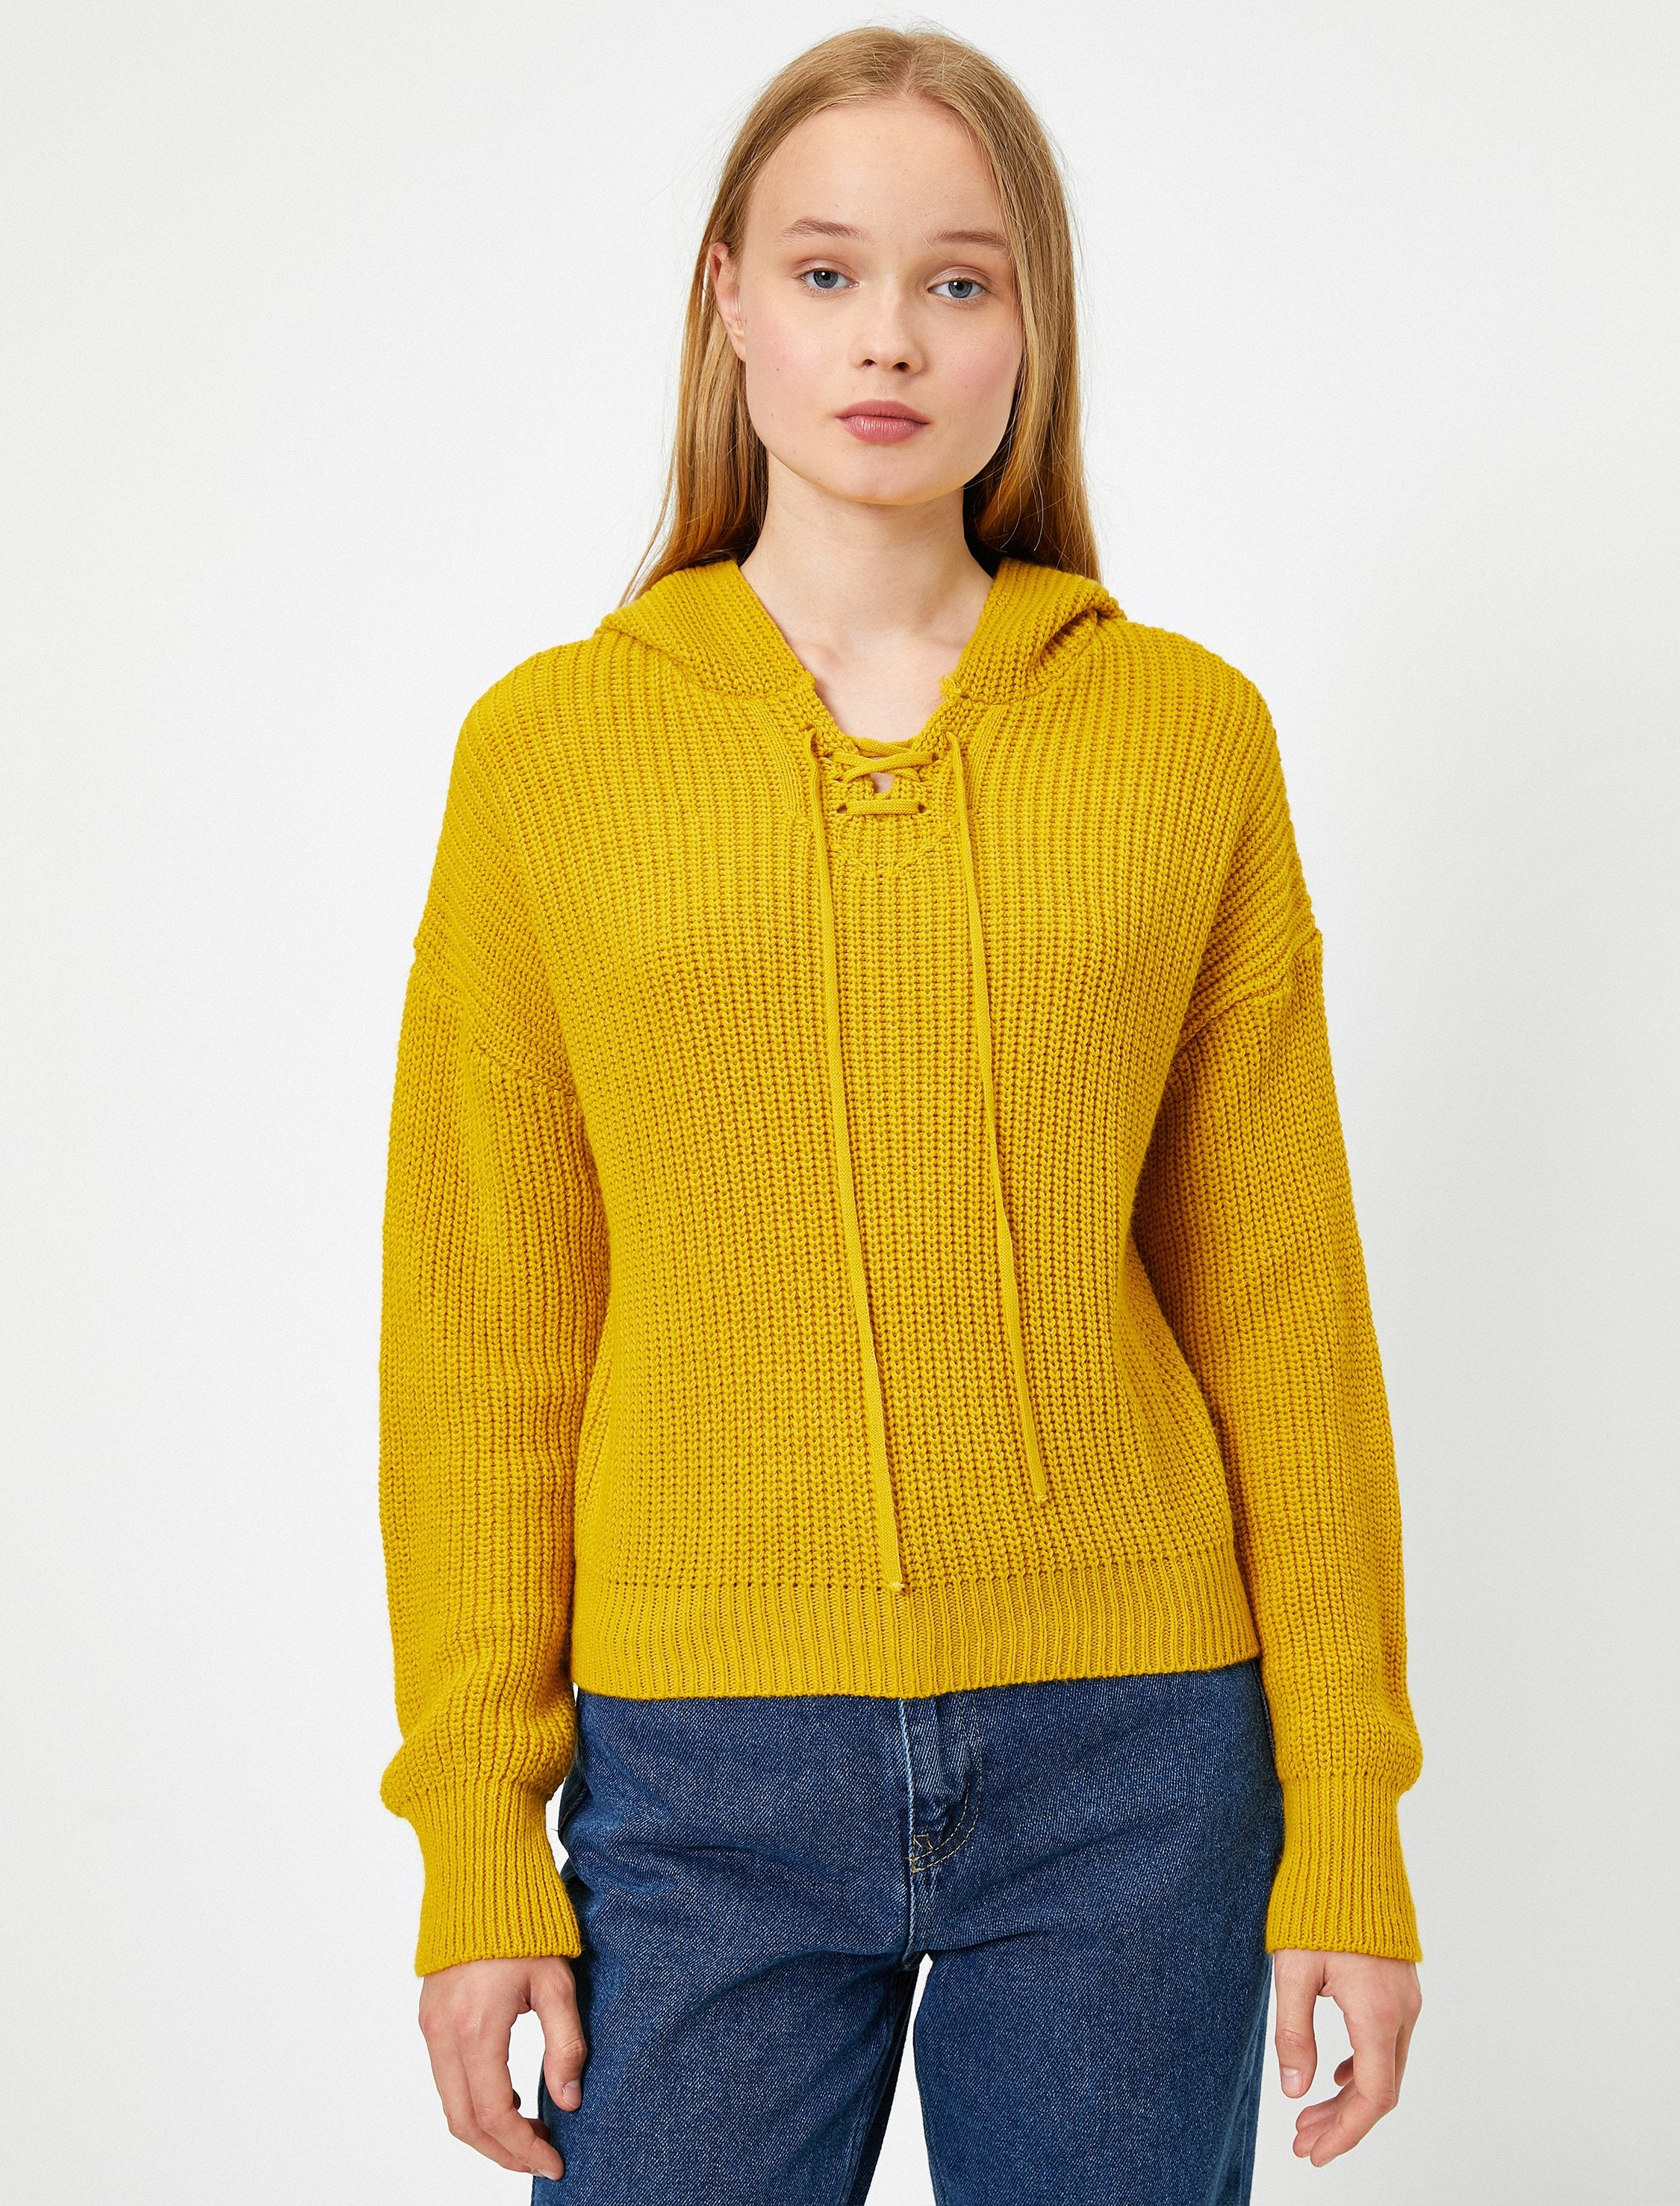 Cropped Hoodie Sweater in Mustard